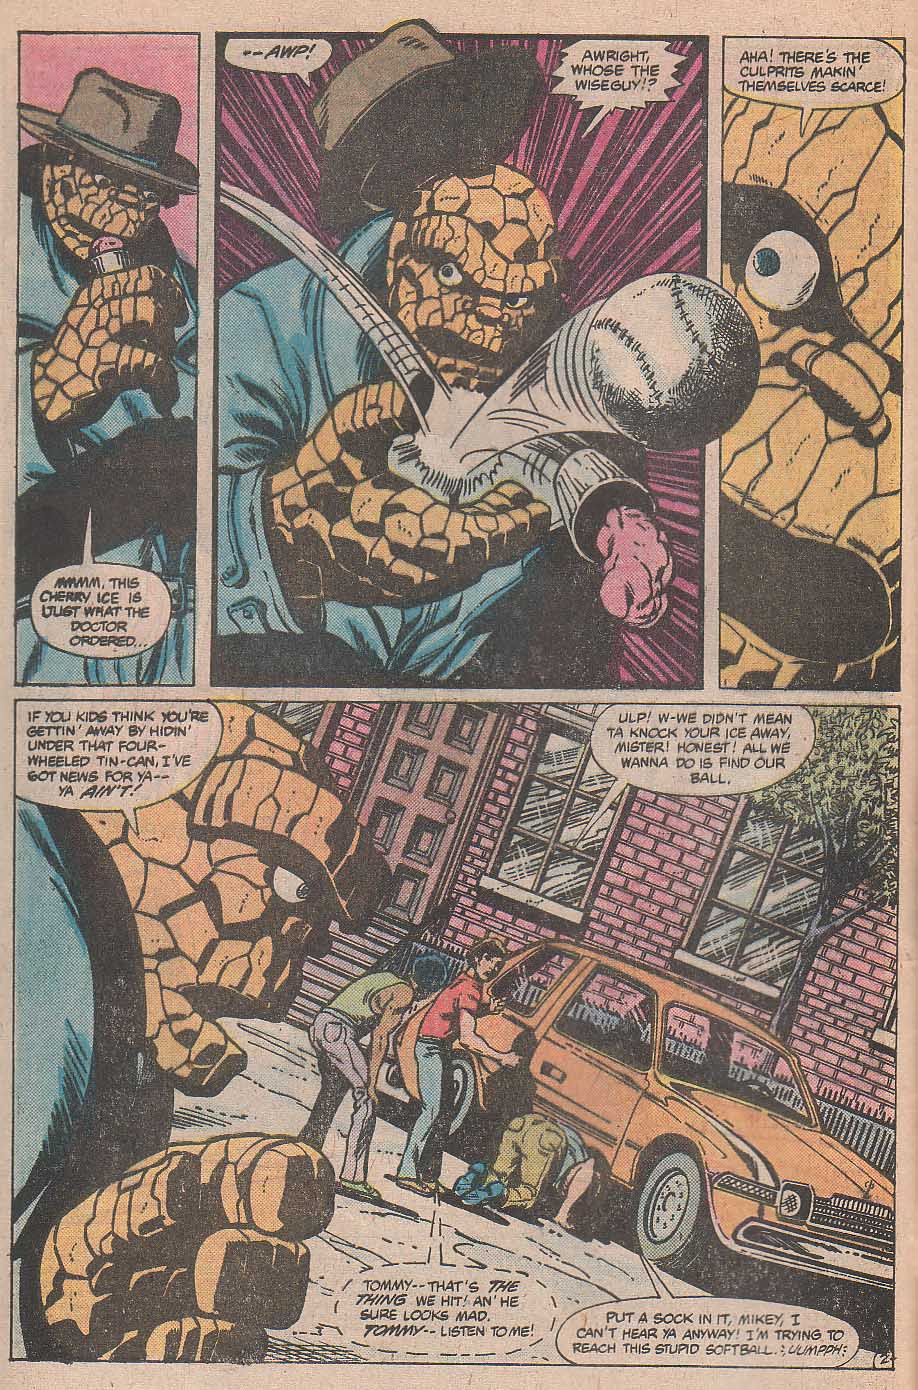 Marvel Two-In-One (1974) #70 pg.2, penciled by Mike Nasser & inked by Gene Day.